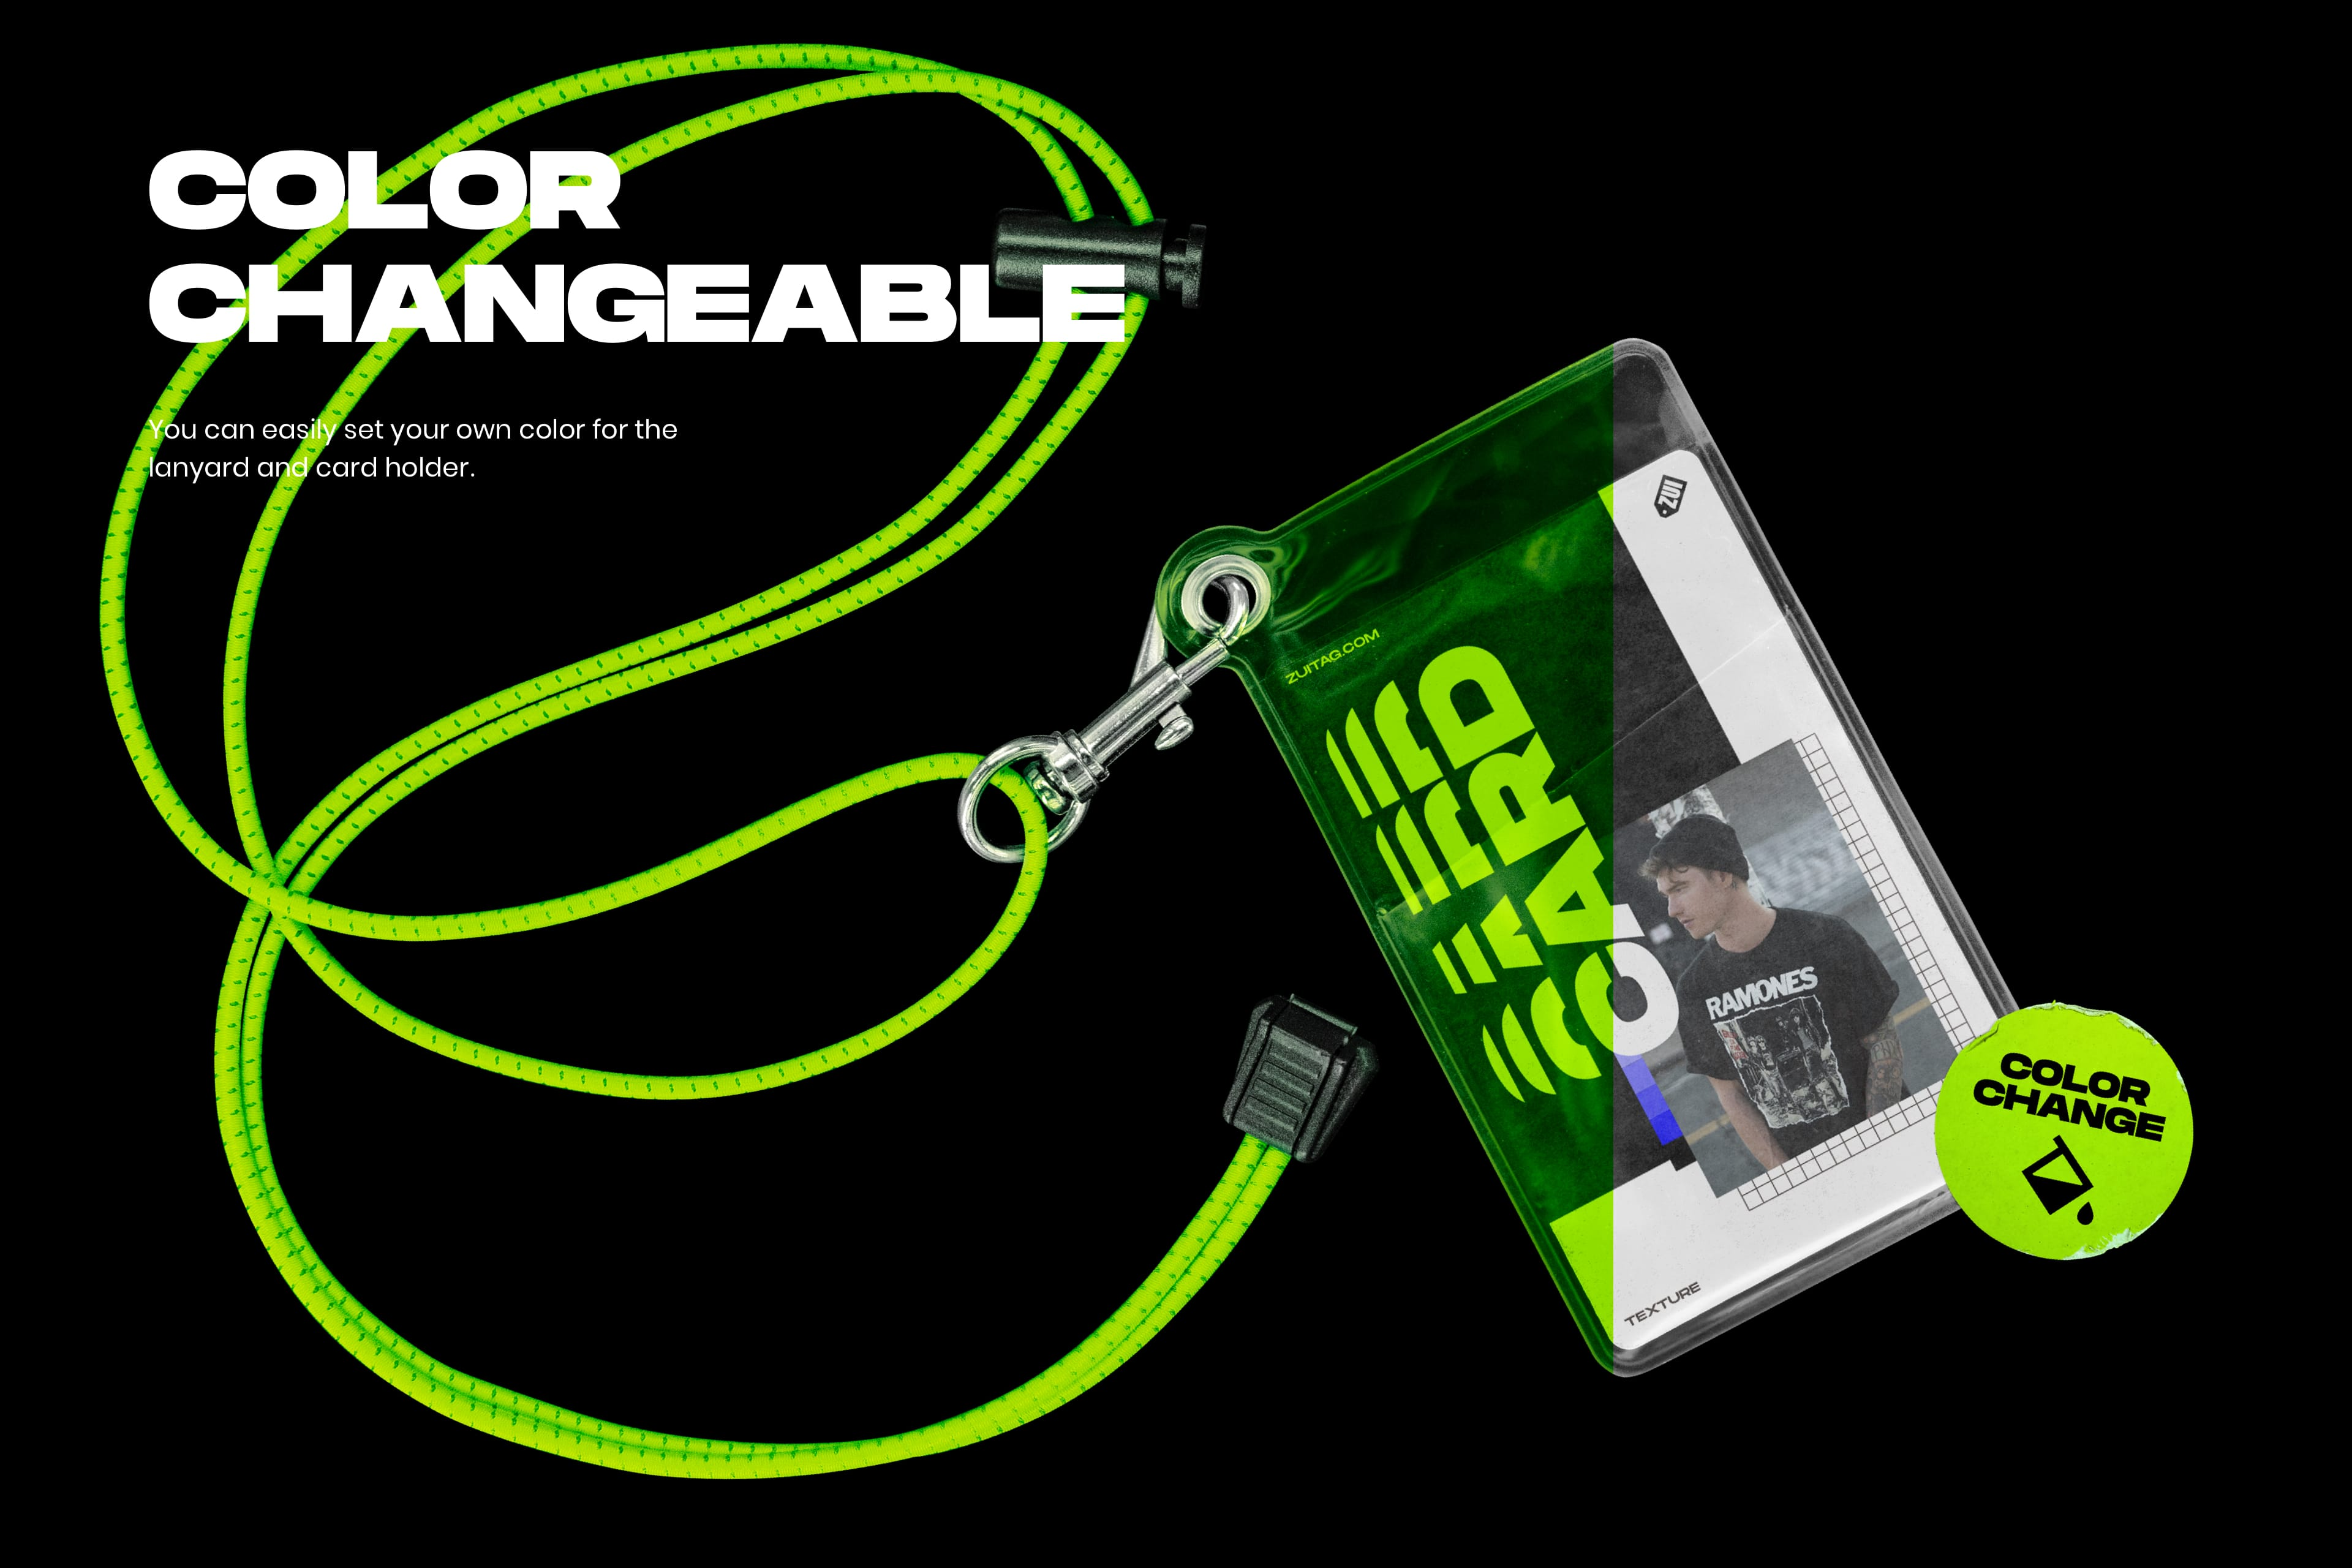 Plastic ID Card and Lanyard Mockup - Color Changeable